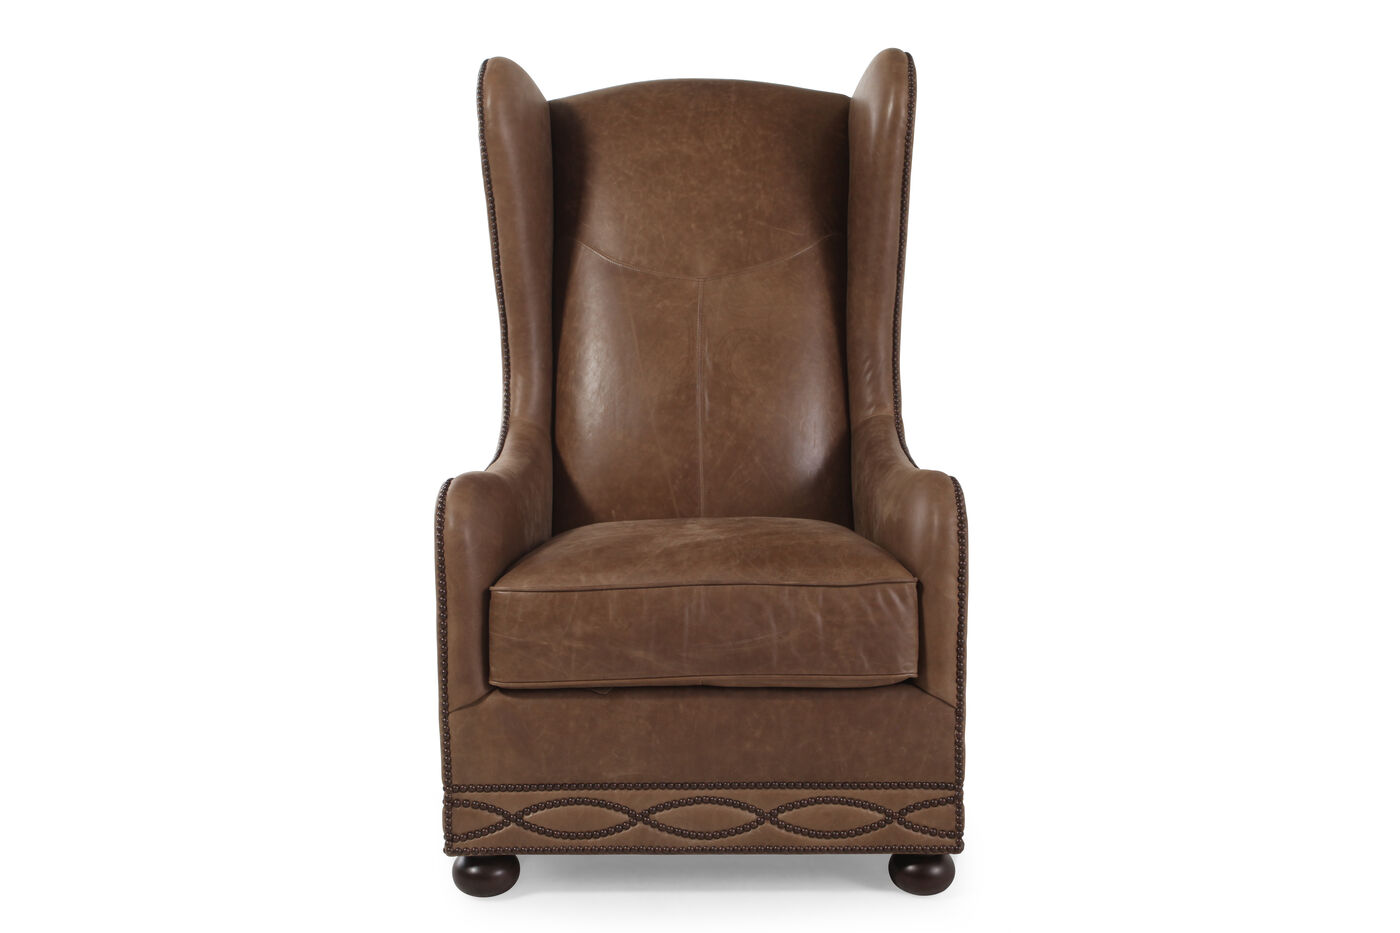 Bernhardt blaine leather chair mathis brothers furniture for Where to buy bernhardt furniture online